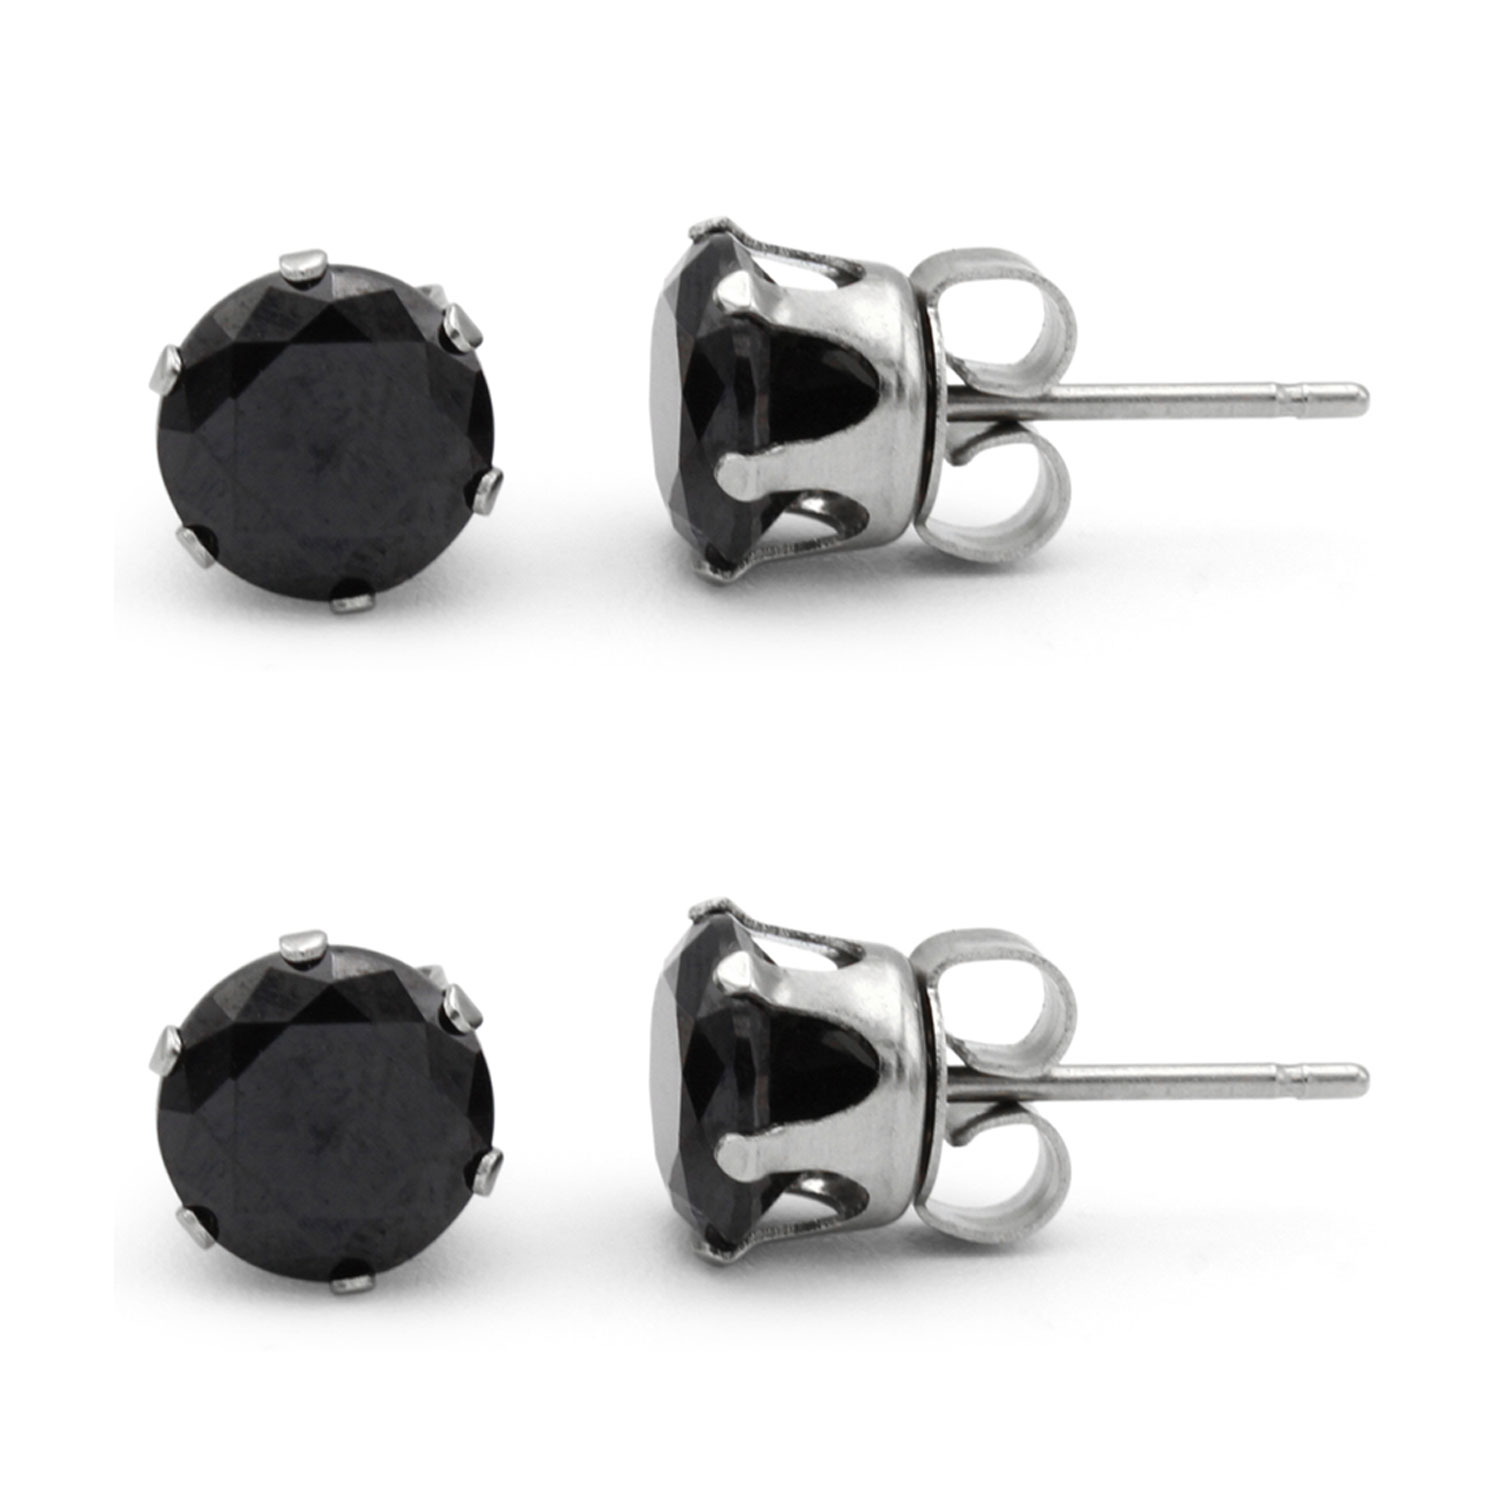 9142827b3 Black Cubic Zirconia Unisex Stud Earrings Stainless Steel Jewelry  Collection Round Studs 3-10 mm